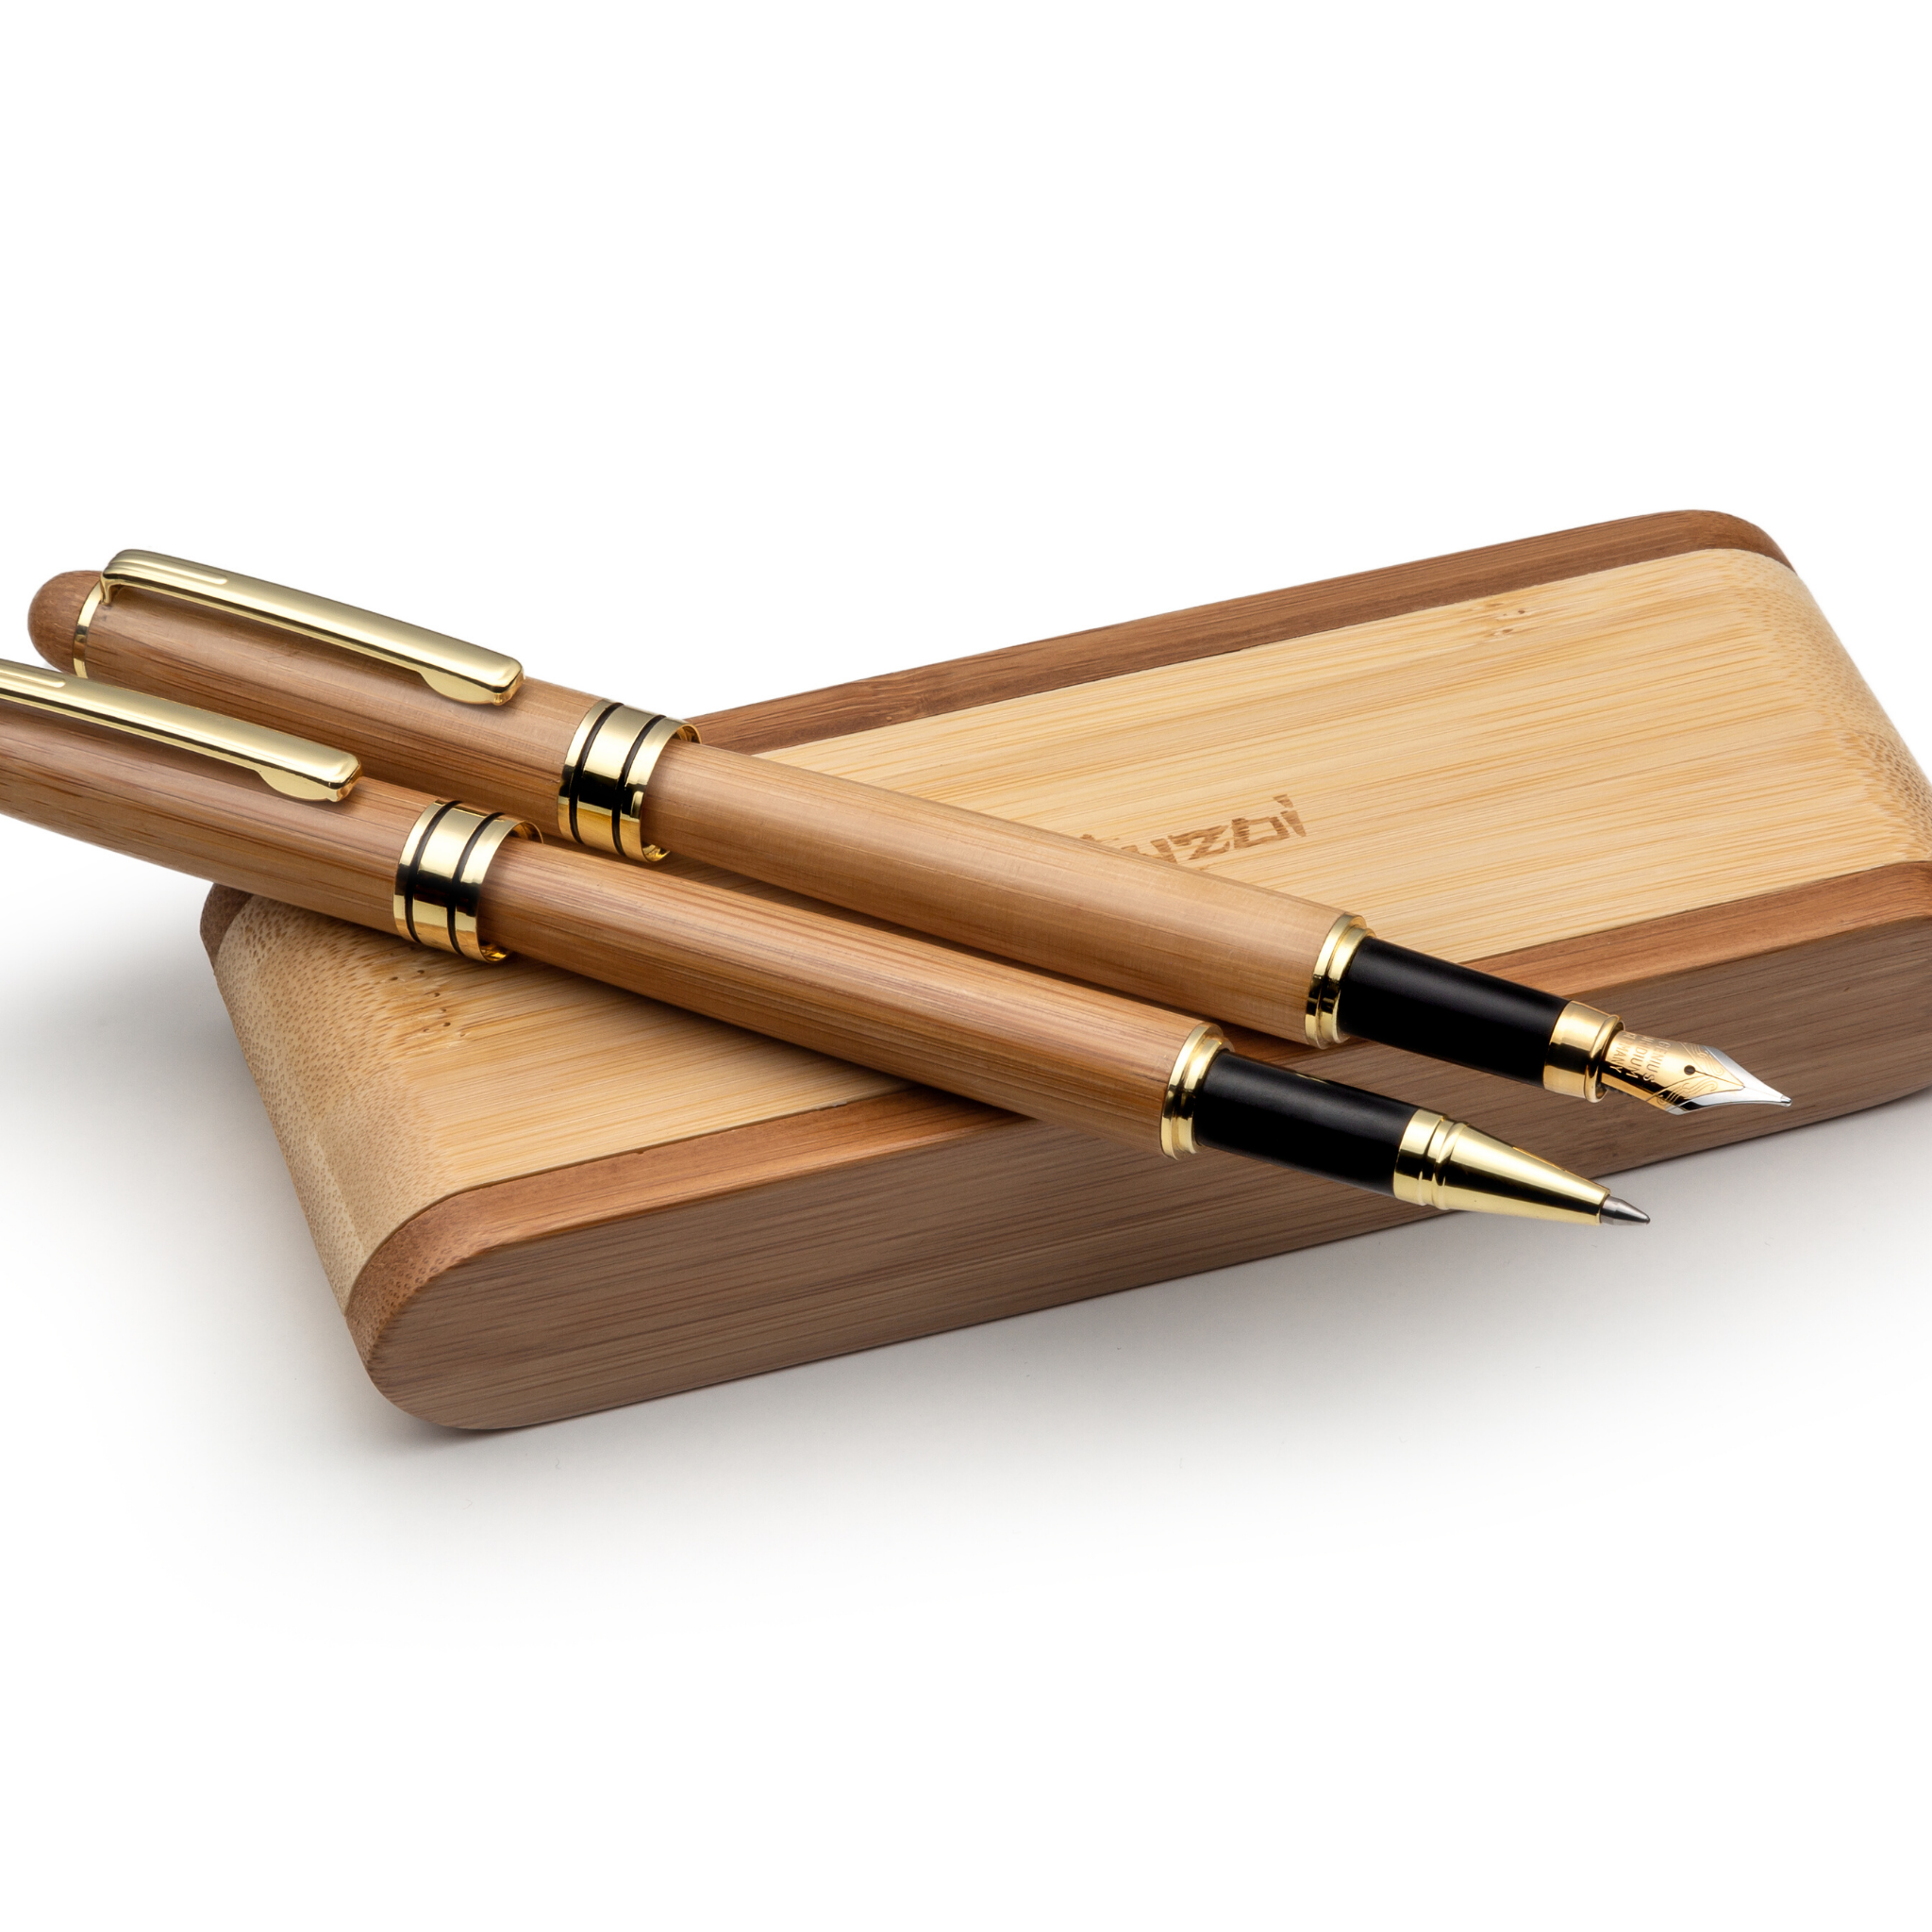 Bamboo Fountain & Rollerball Pen Gift Set - Exquisite Calligraphy Fine Nib & Rollerball Pen W/Bamboo Gift Box Case